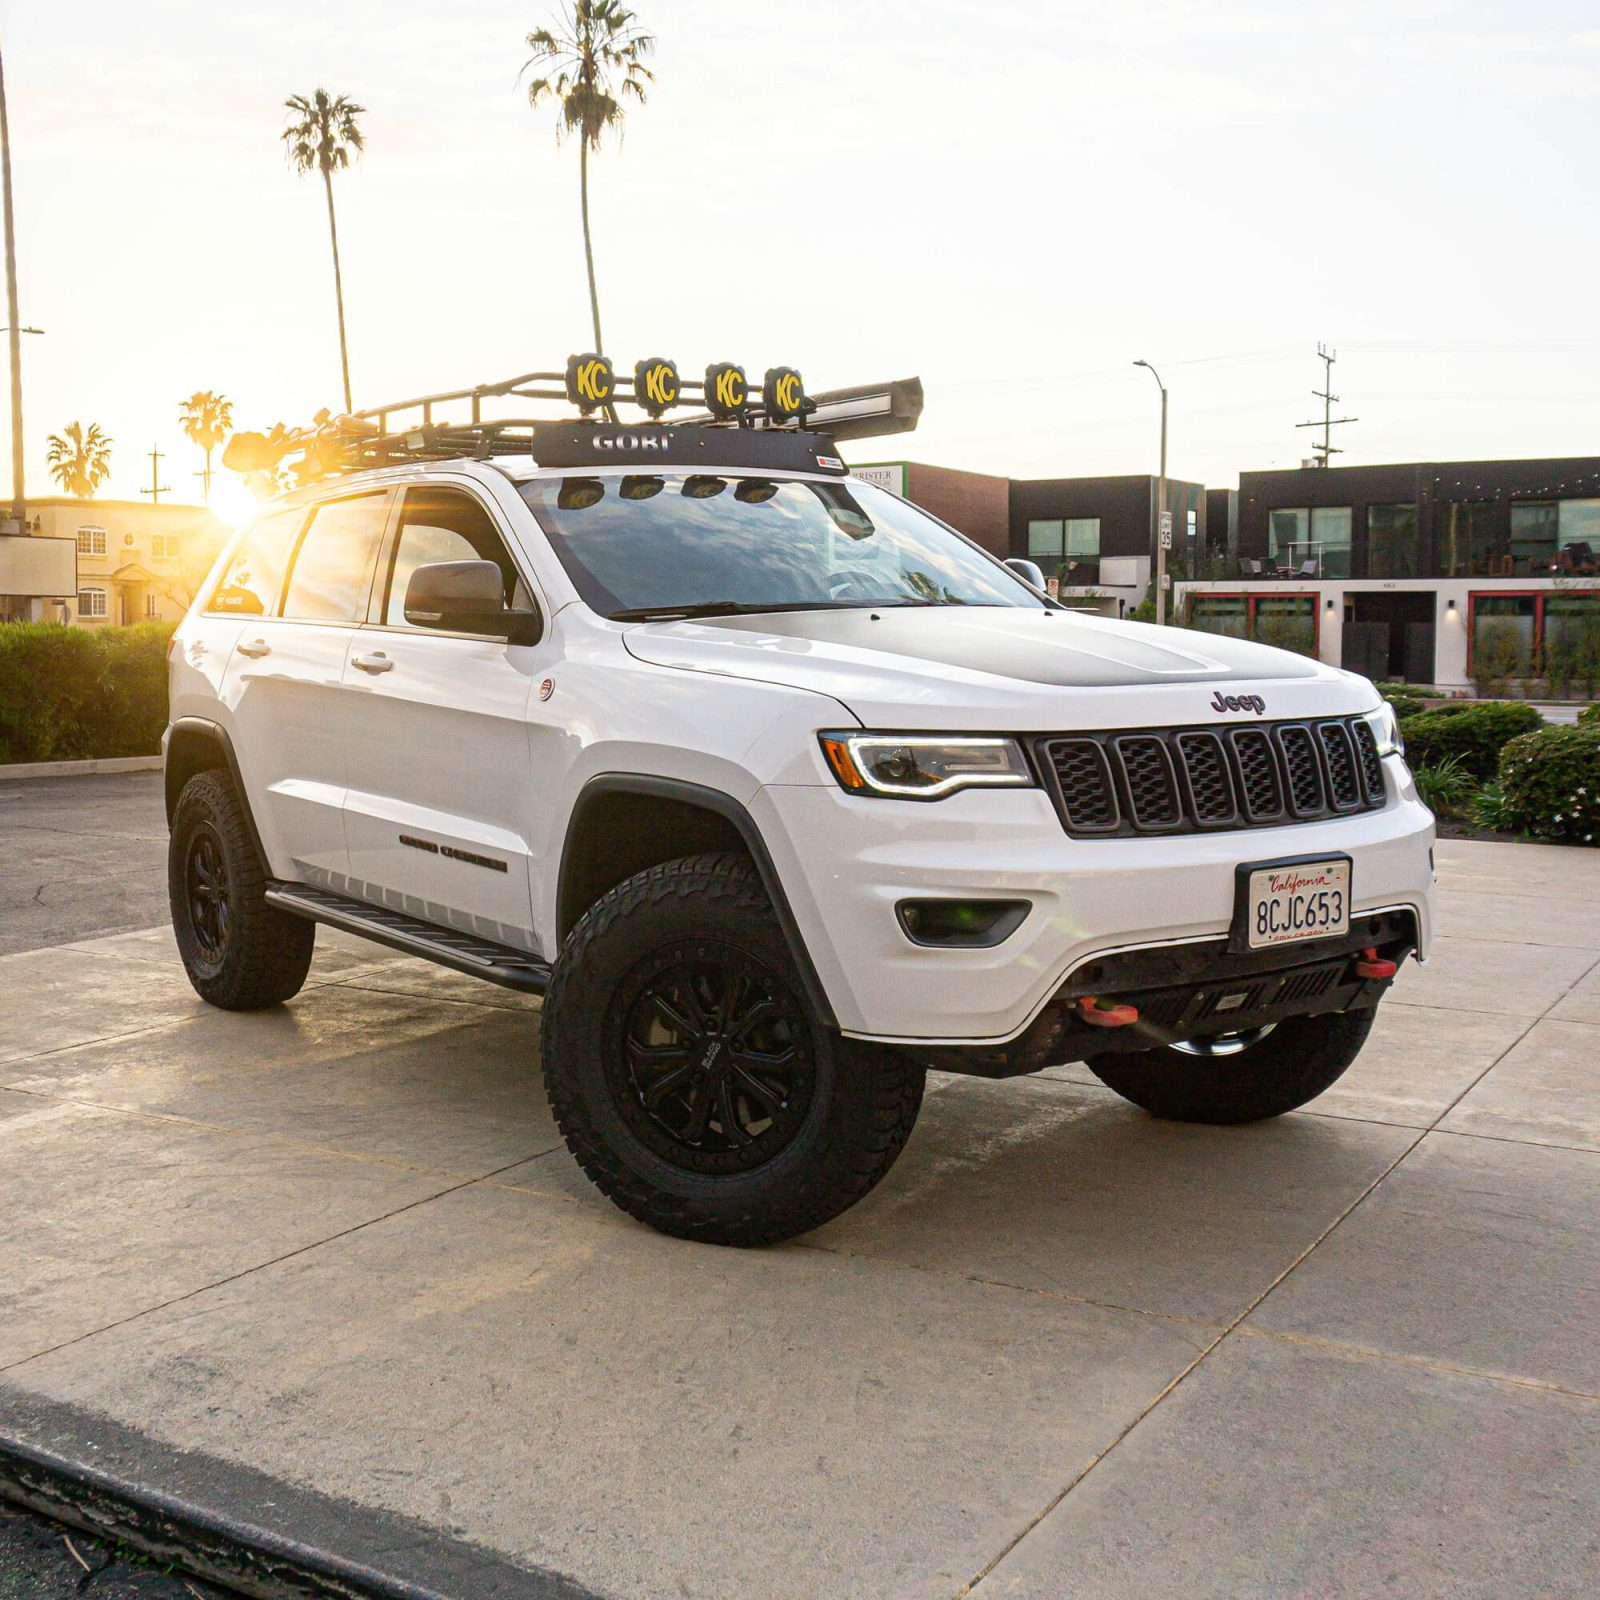 Lifted Jeep Grand Cherokee Trailhawk on 33s Modified for Overland Expeditions